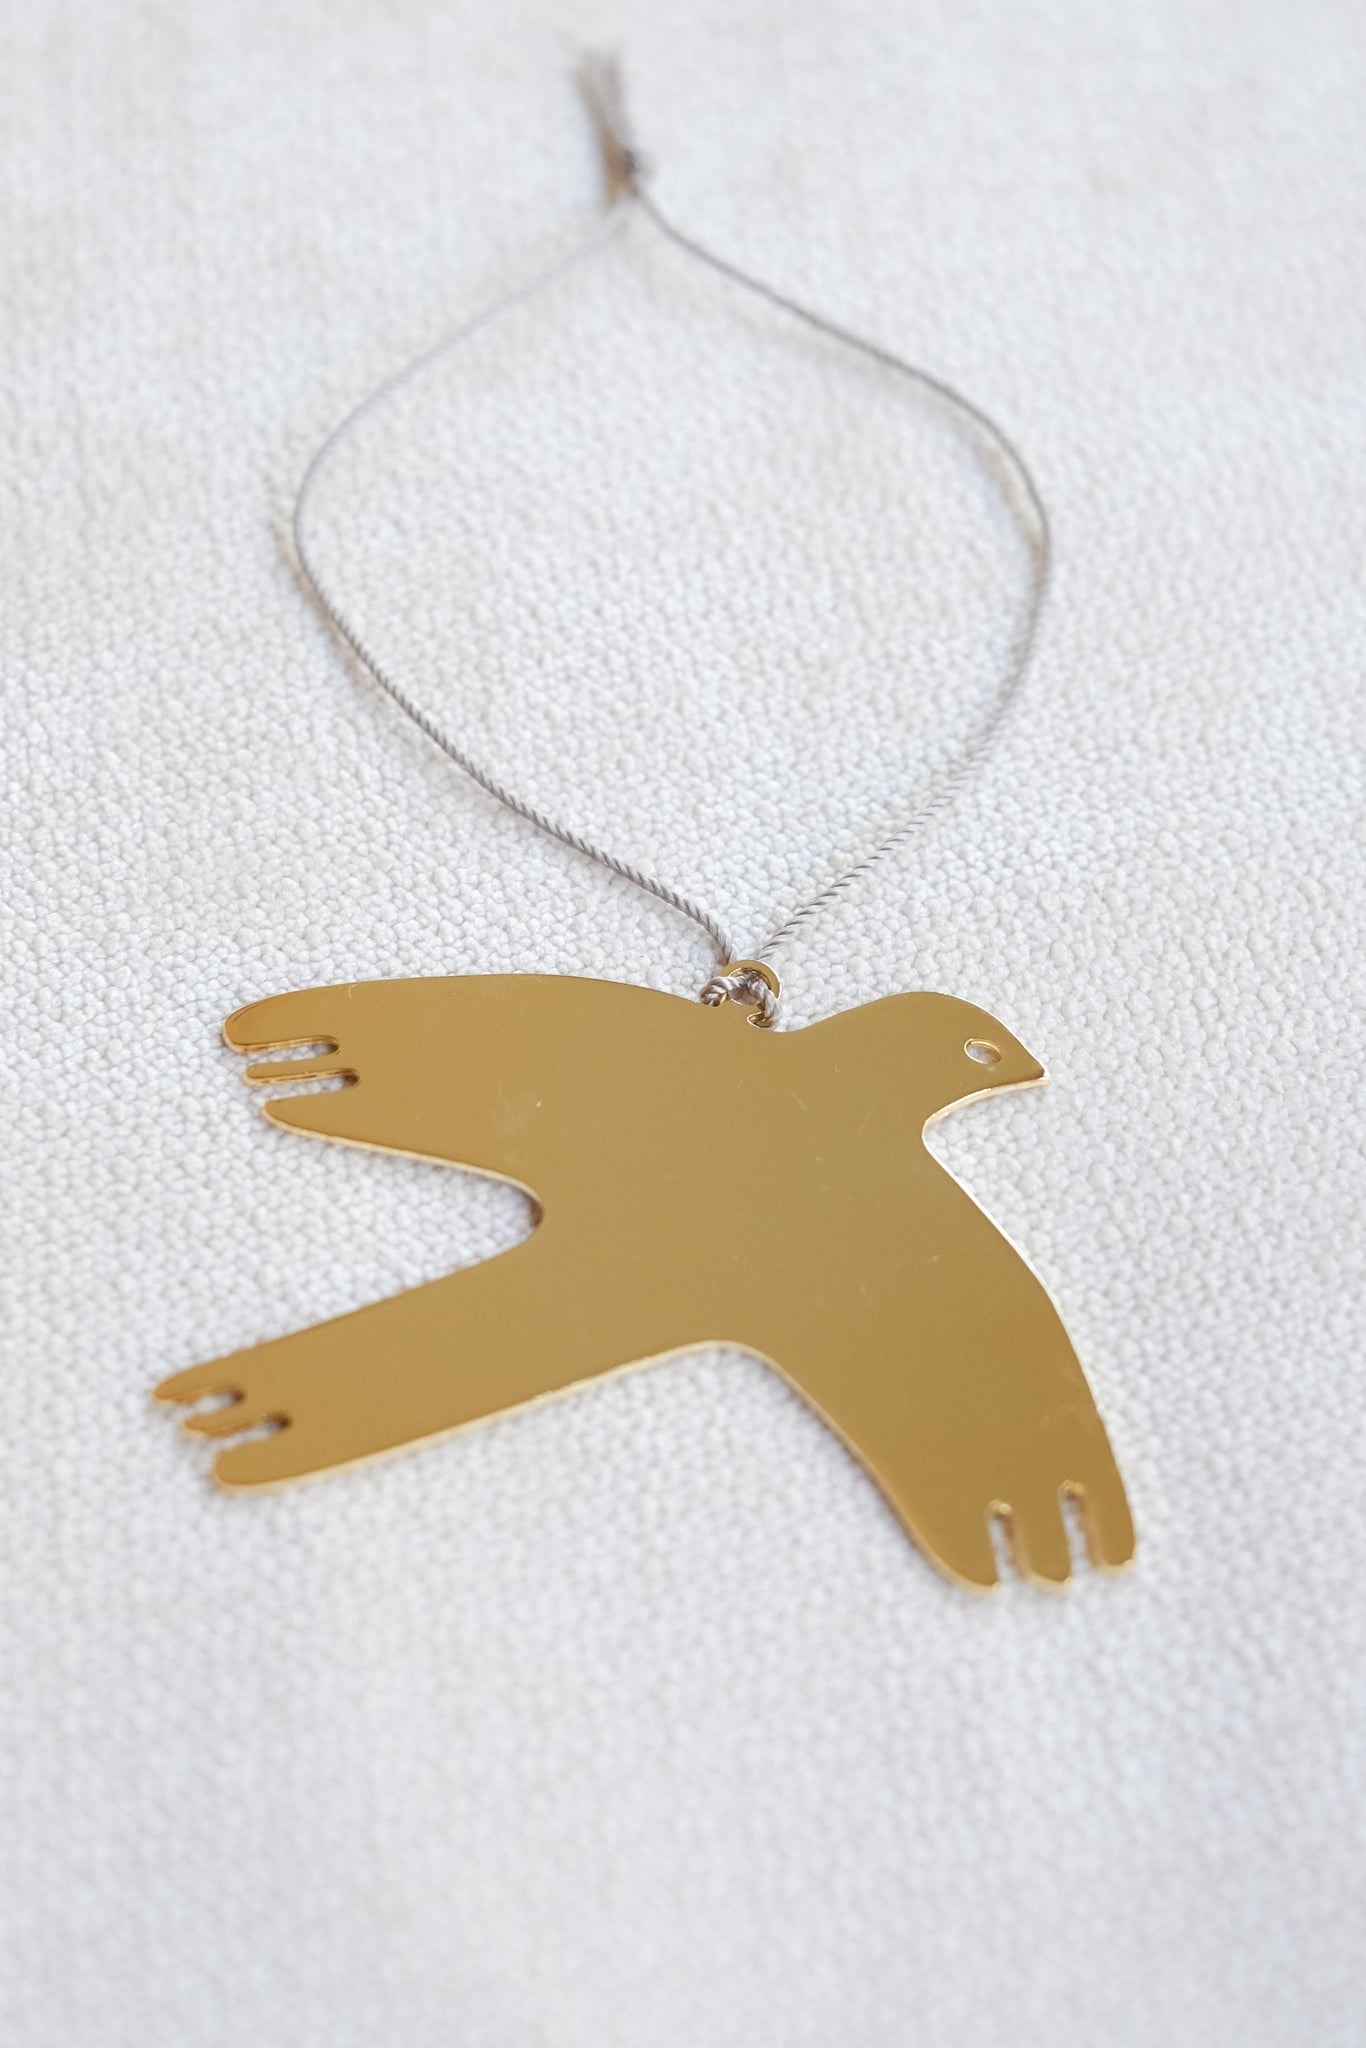 Titlee :: Bird Ornament